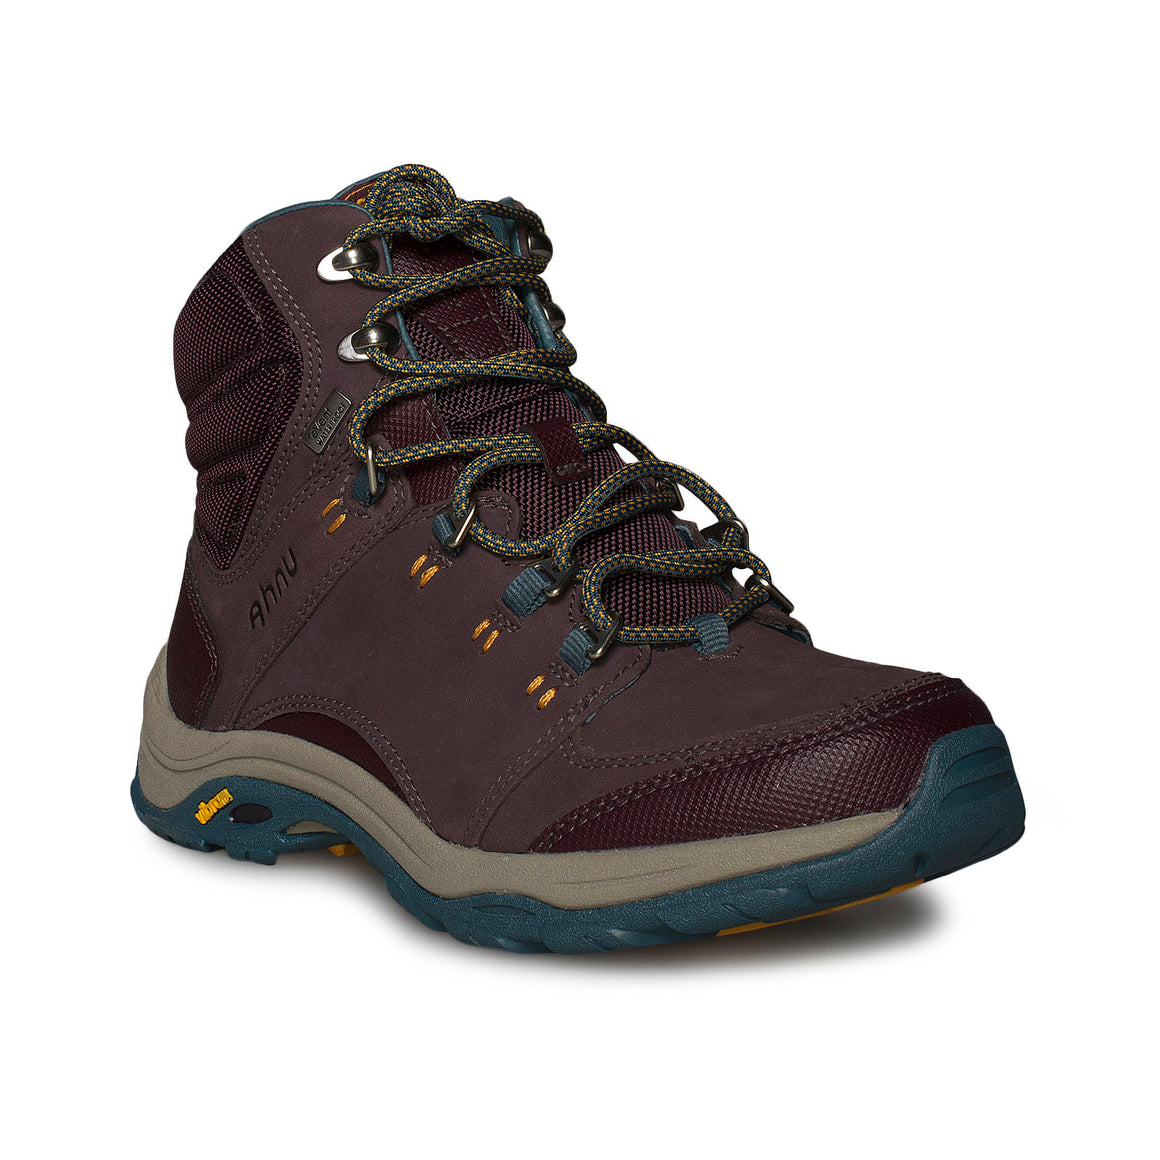 Ahnu Montara III Event Boot Deep Wine - Women's